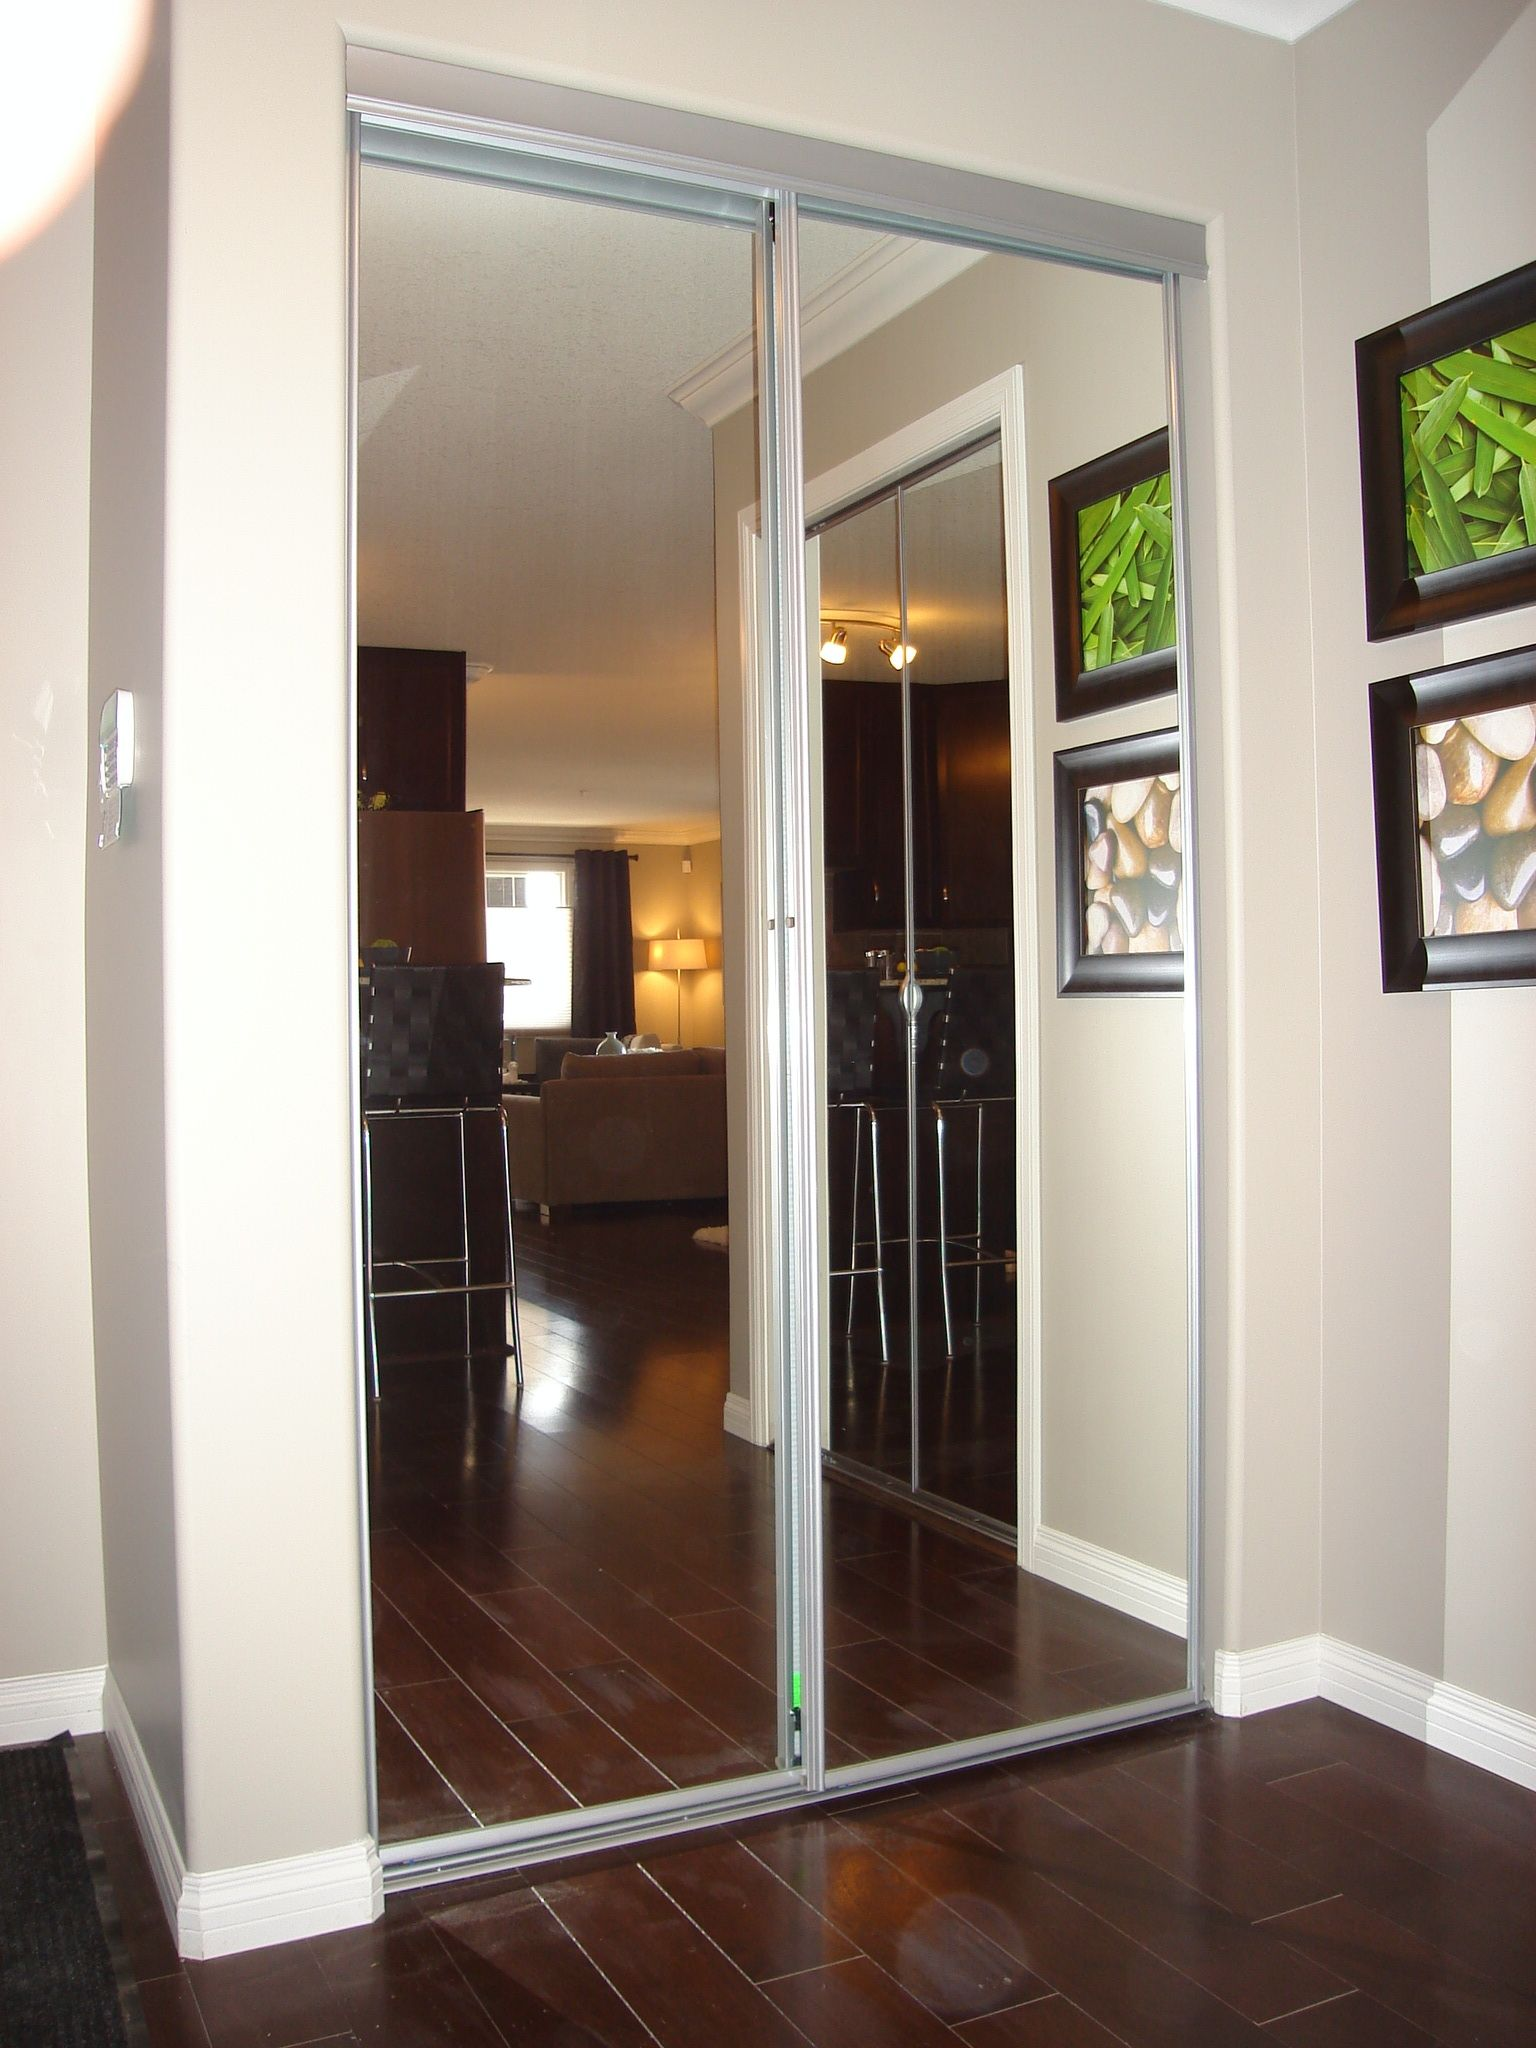 Stanley Mirrored Sliding Wardrobe Doors Httptogethersandia